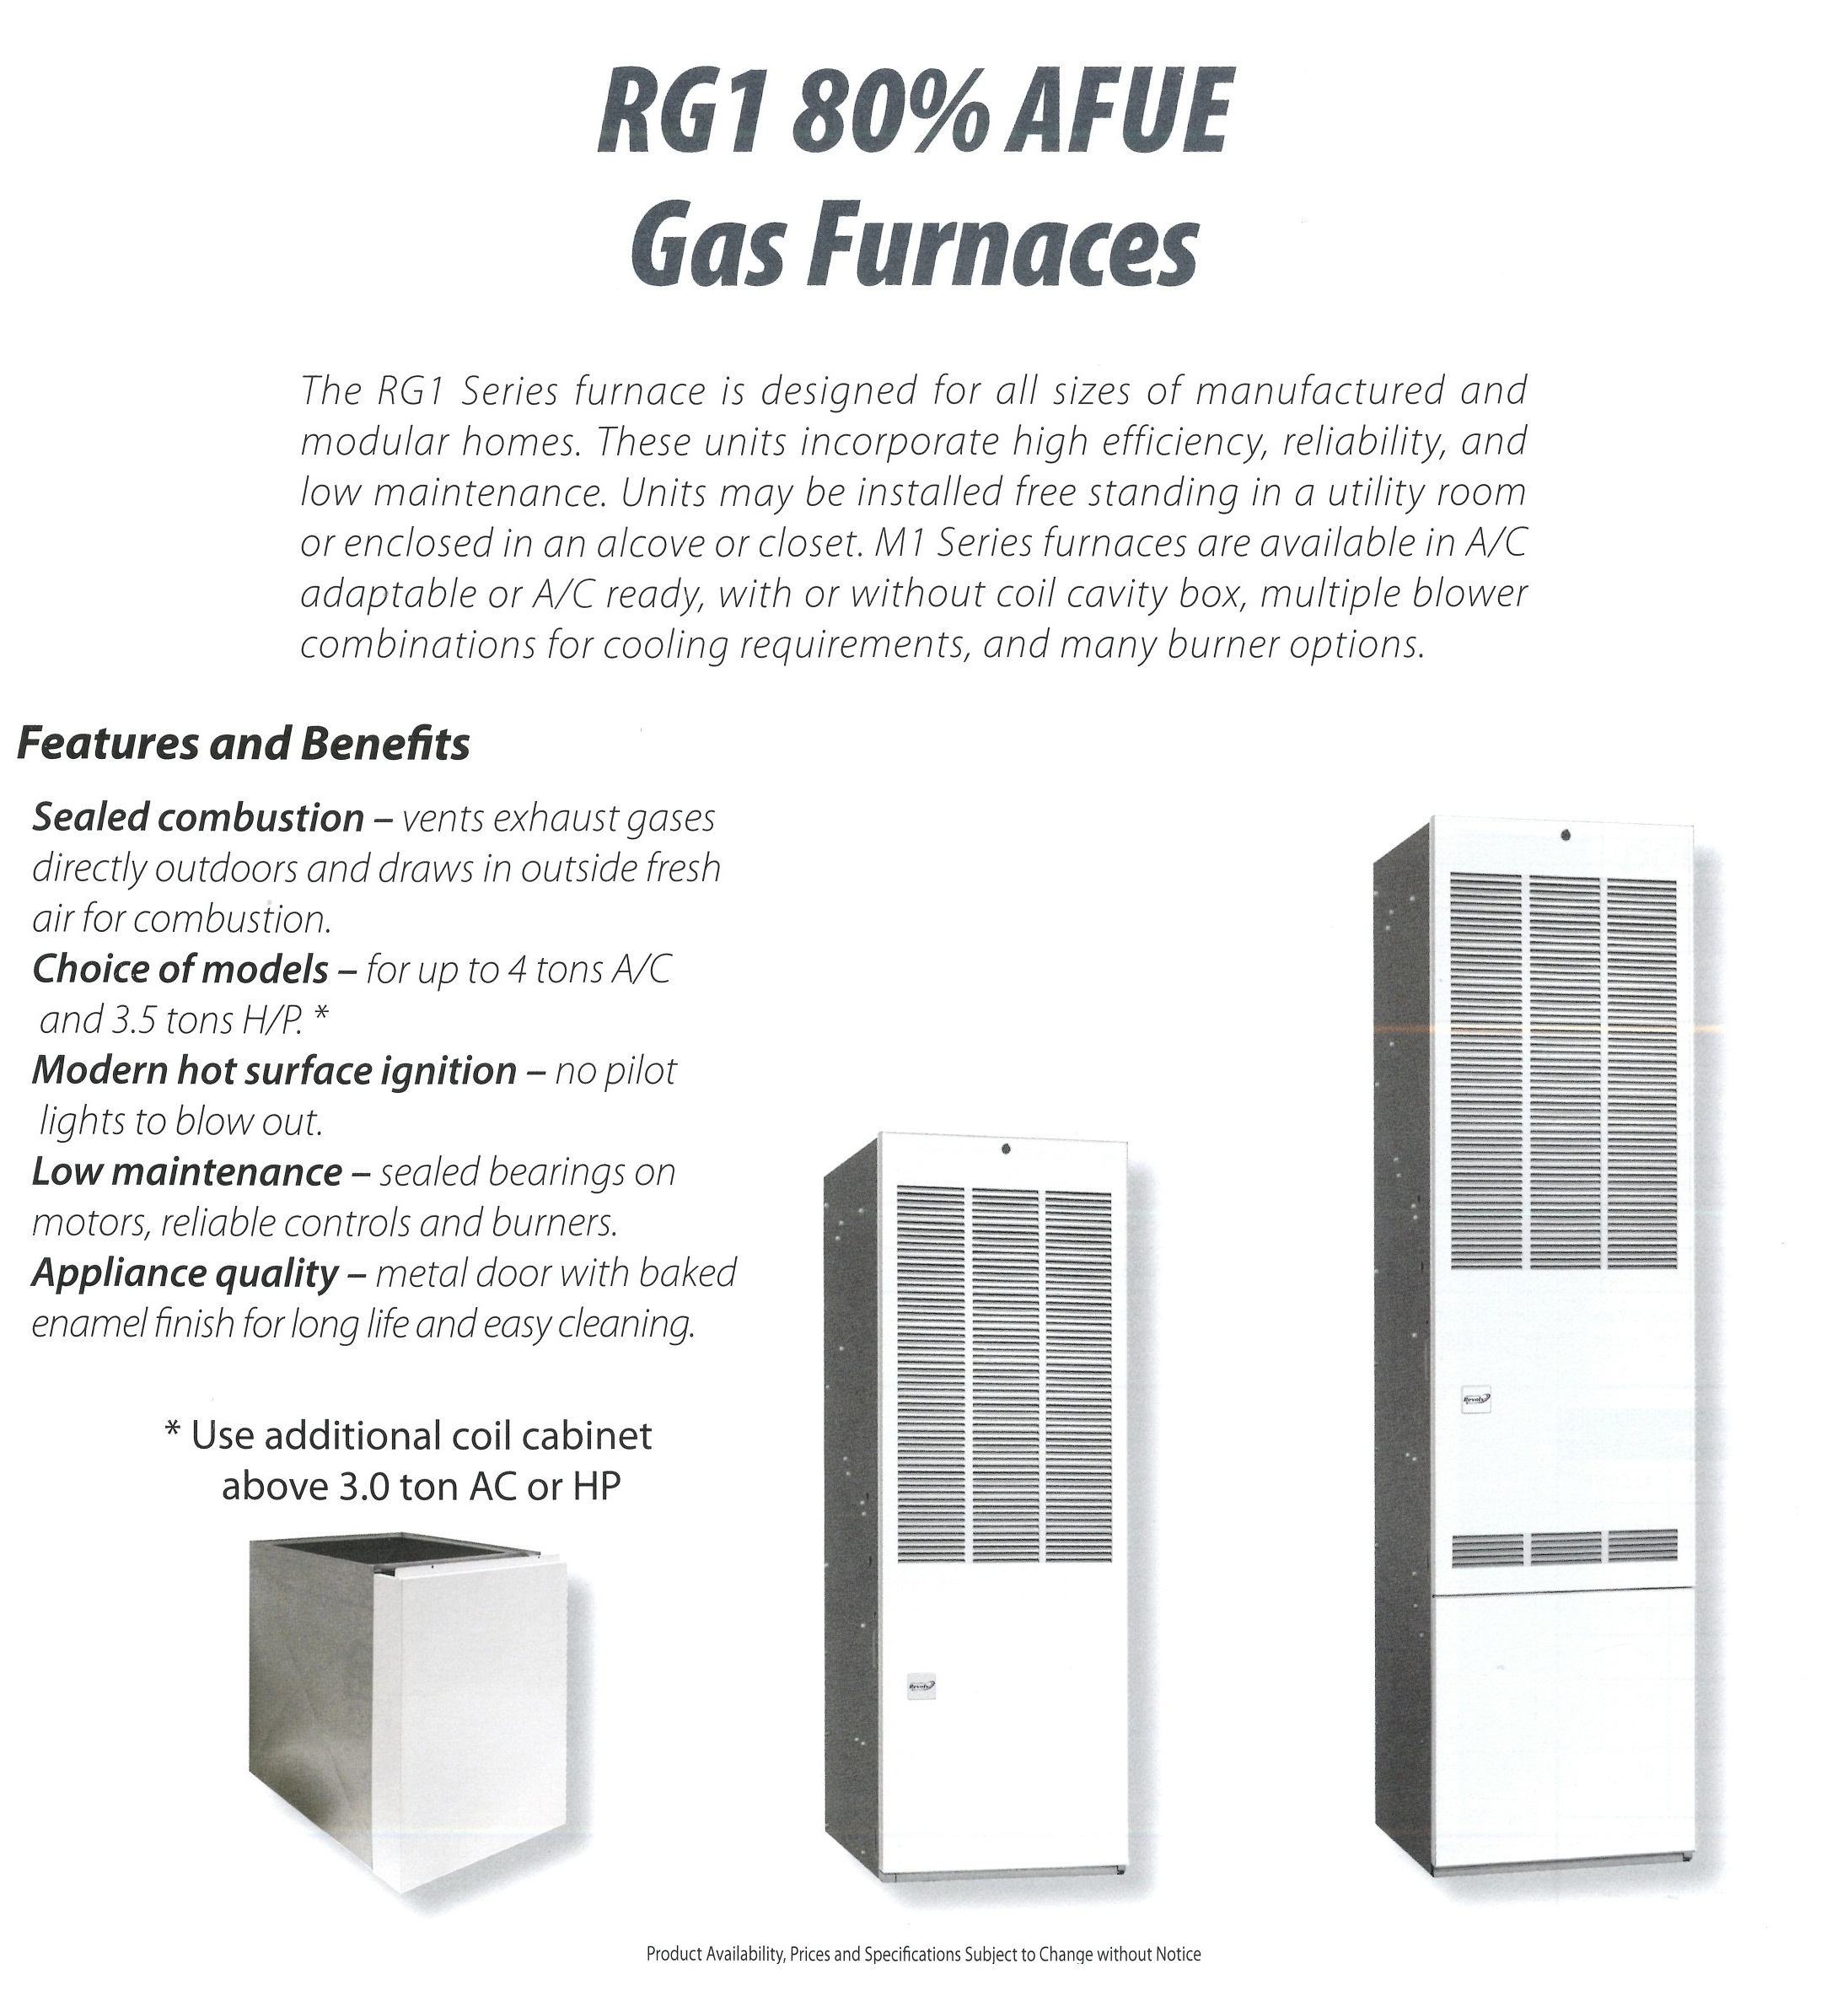 RG1 80% AFUE GAS FURNACES